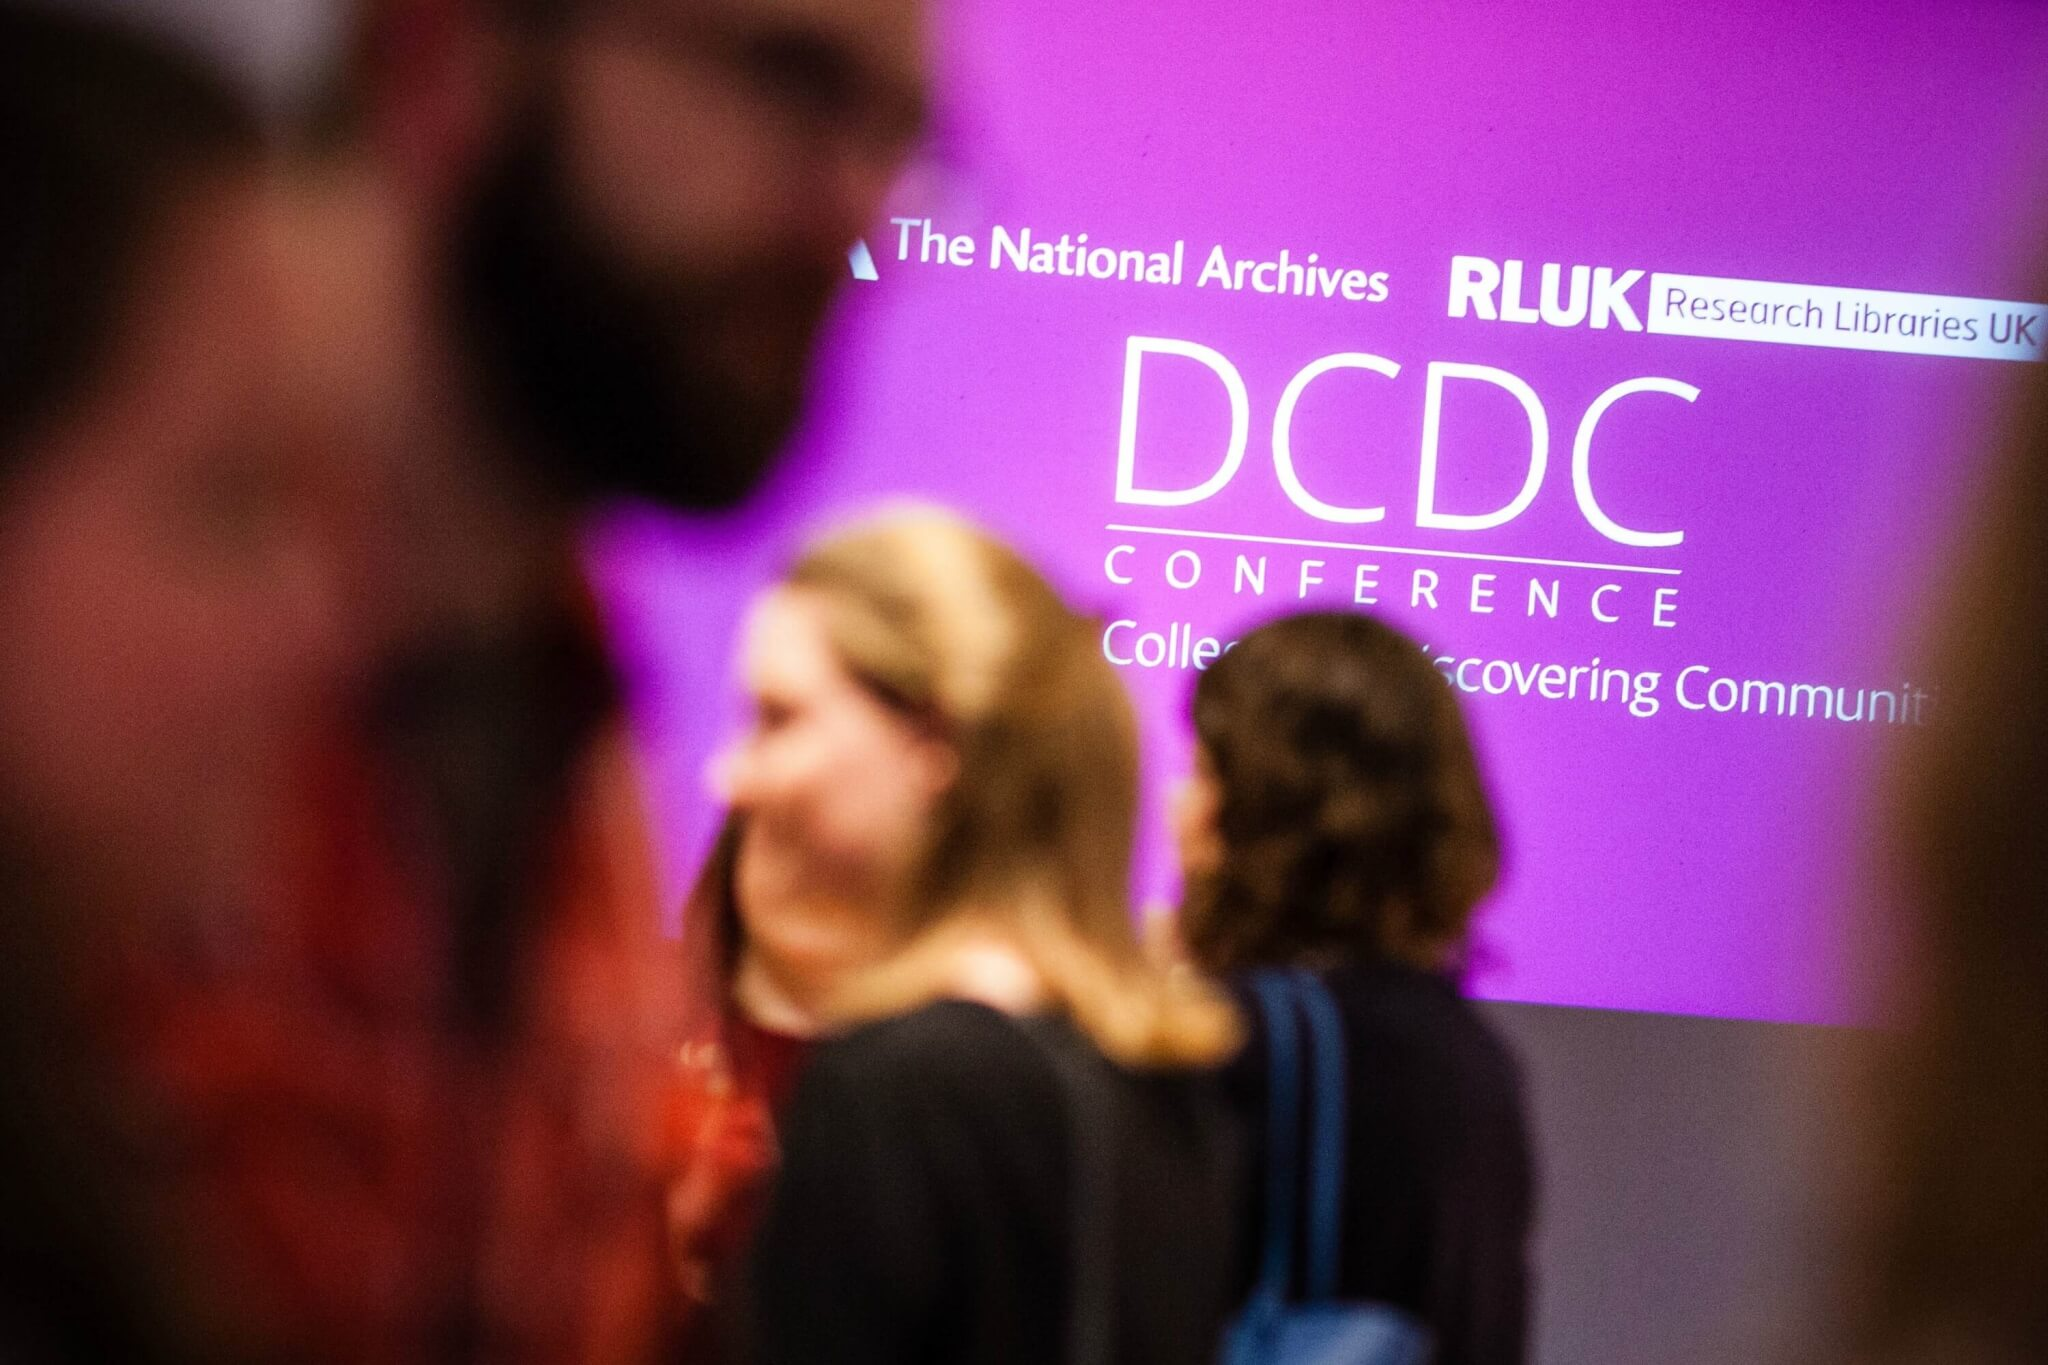 DCDC17: The Cultural Value of Collections and the Creative Economy